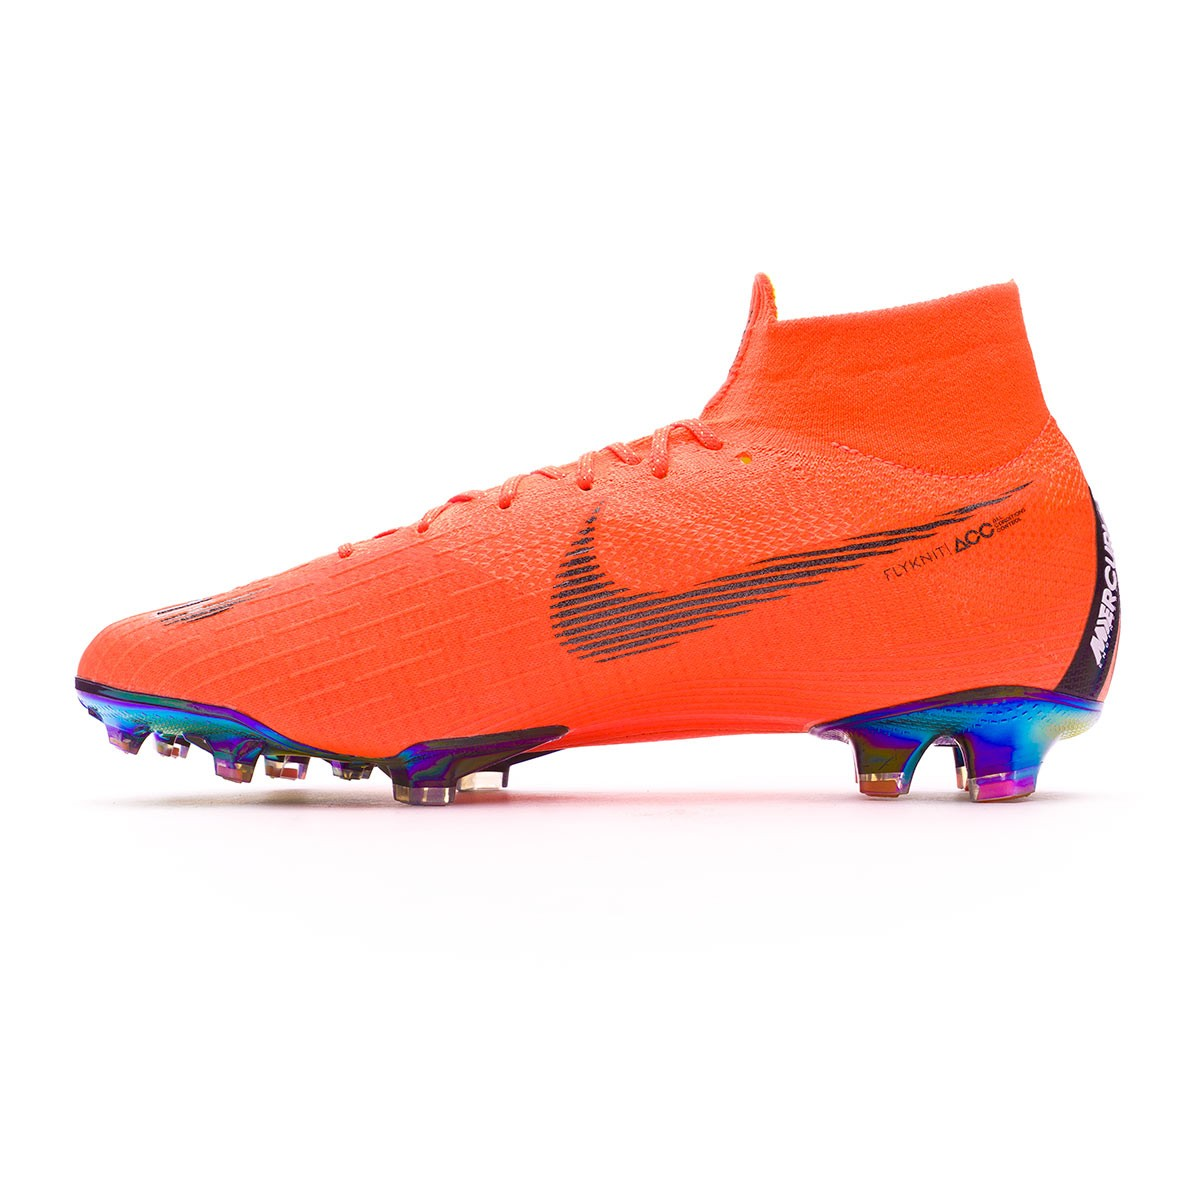 94e78b5d9ae Football Boots Nike Mercurial Superfly VI Elite FG Total orange-Black-Volt  - Tienda de fútbol Fútbol Emotion